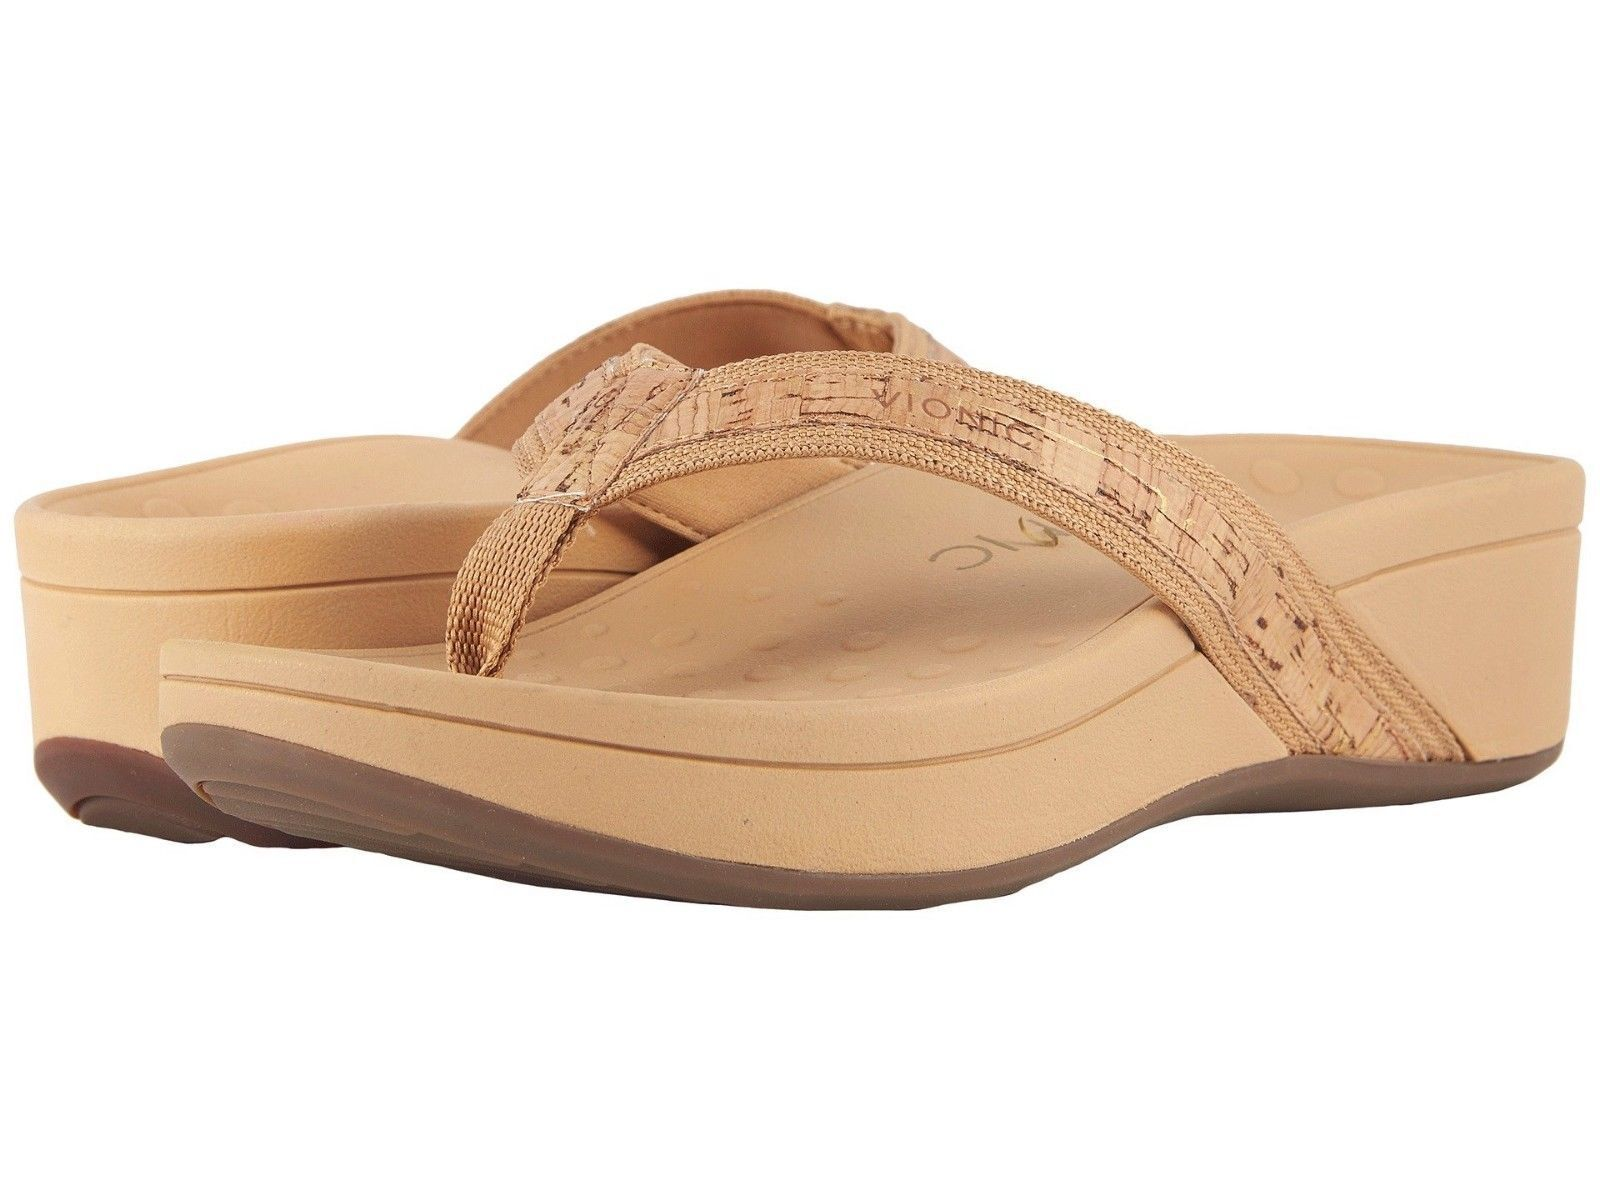 NIB Women's Vionic High Tide Platform Flip Flops Thong Sandals gold Cork 8 tan